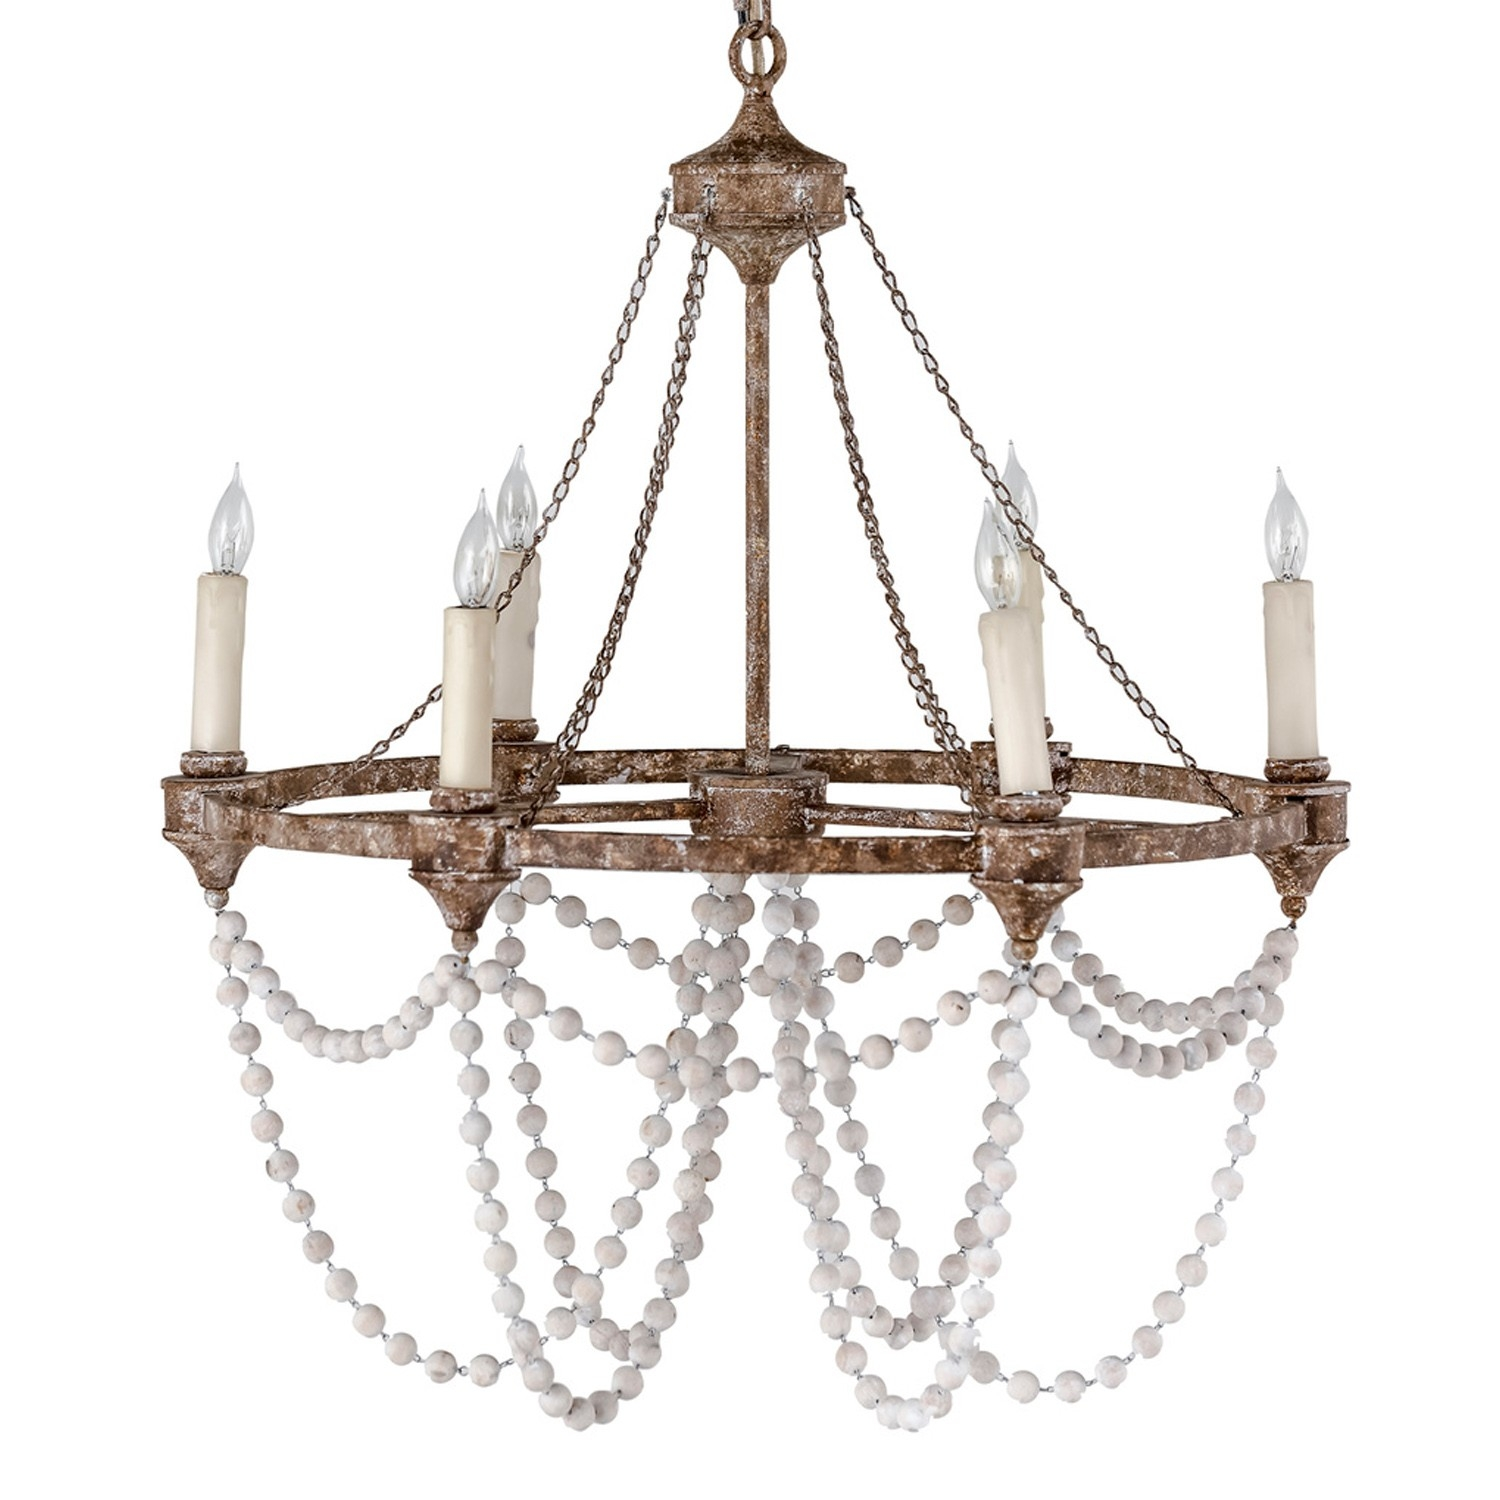 Gab Nadia Chandelier Candelabra Inc Pertaining To Gabby Chandelier (#11 of 12)